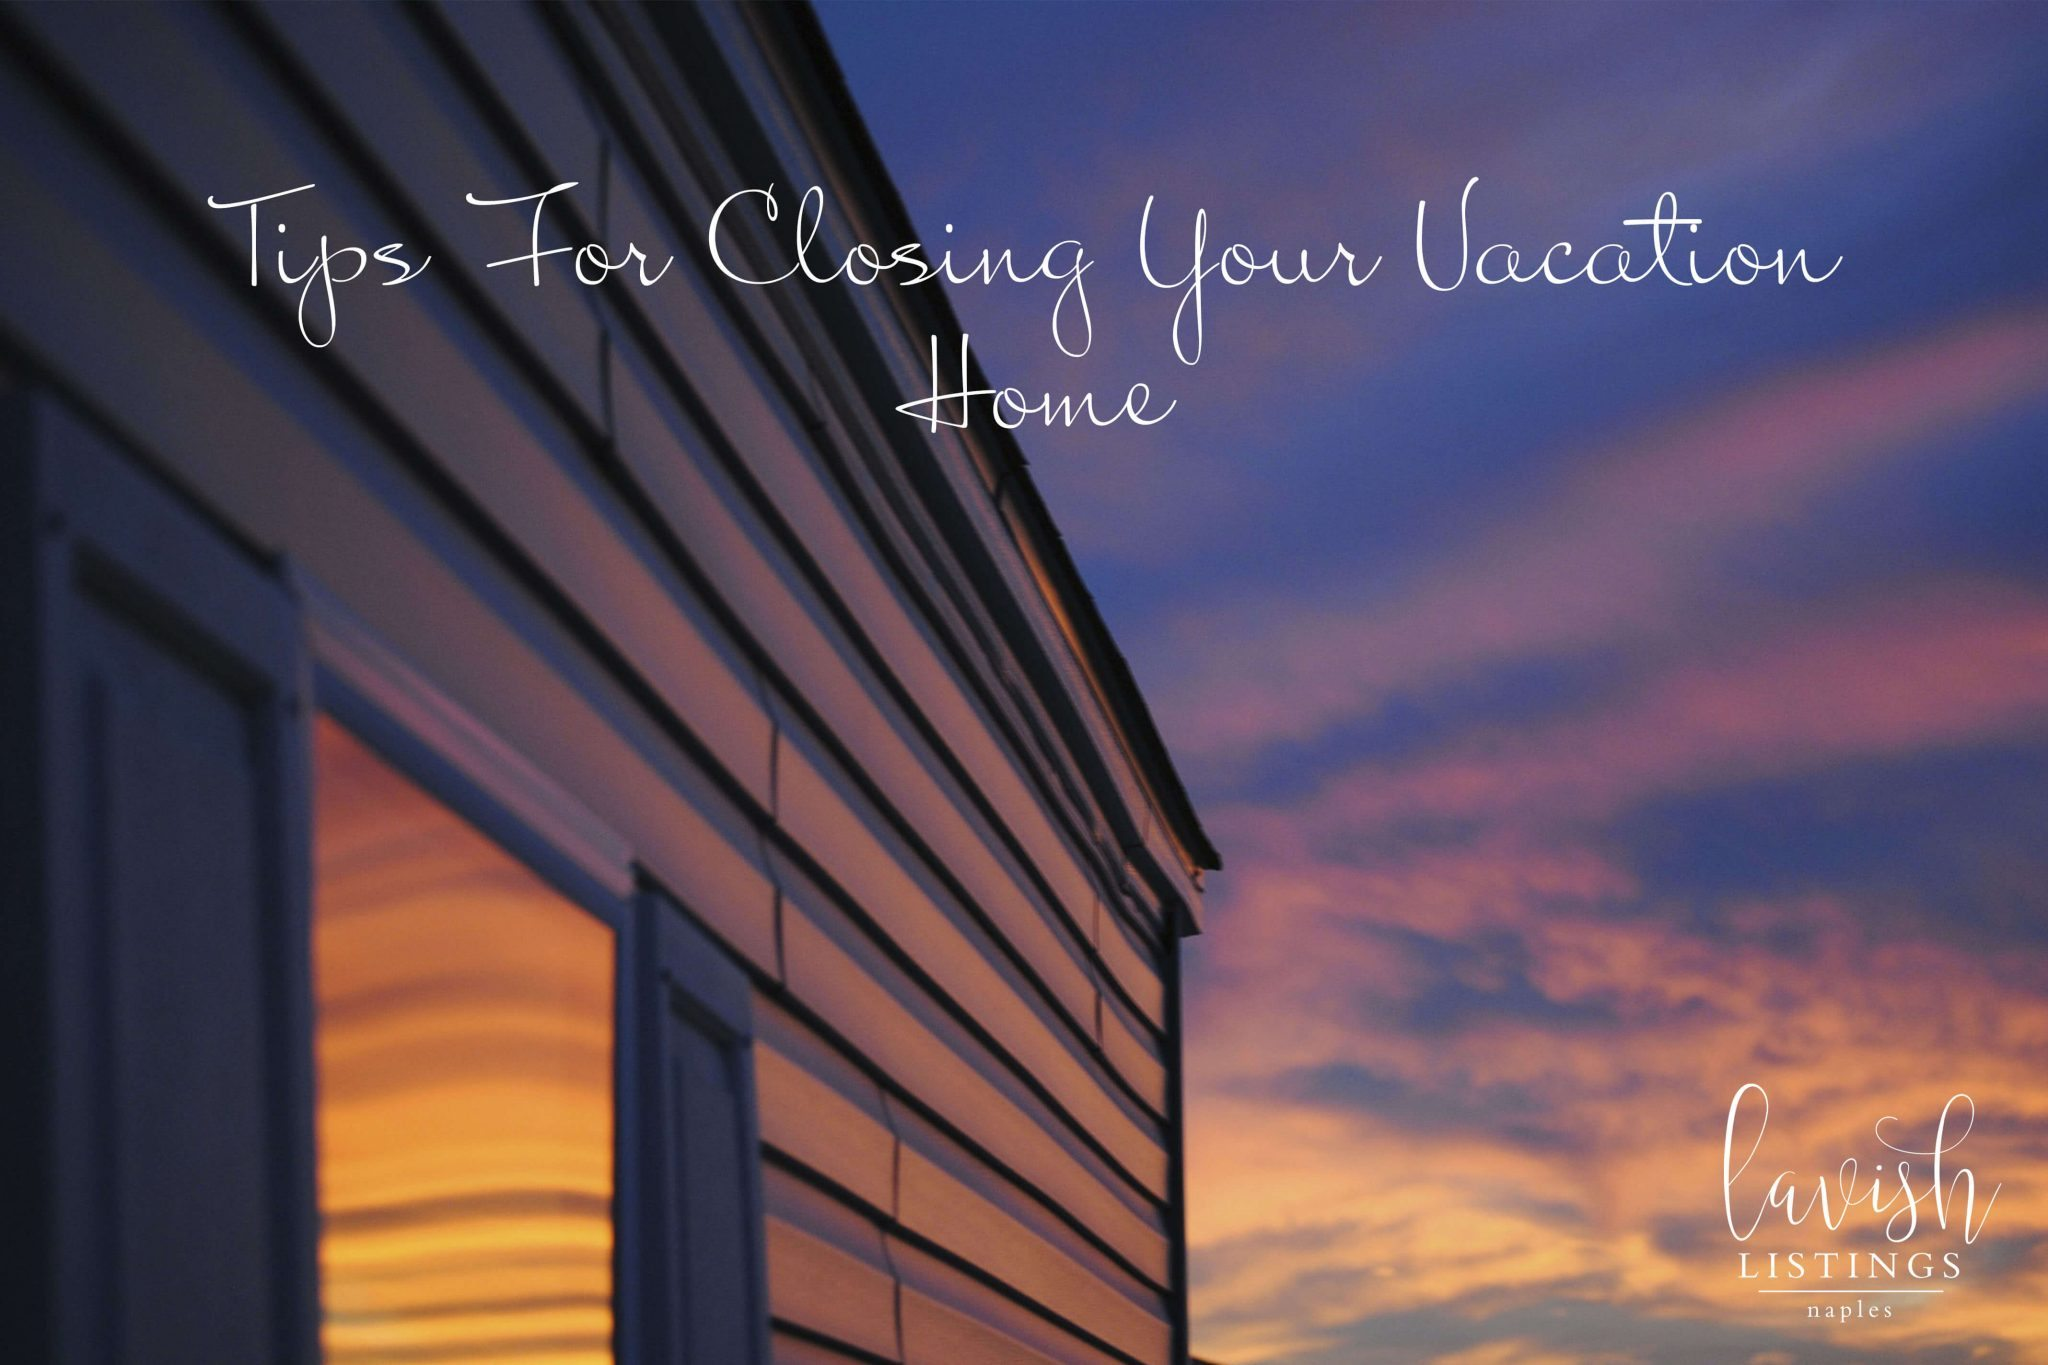 Tips For Closing Florida Home For Summer